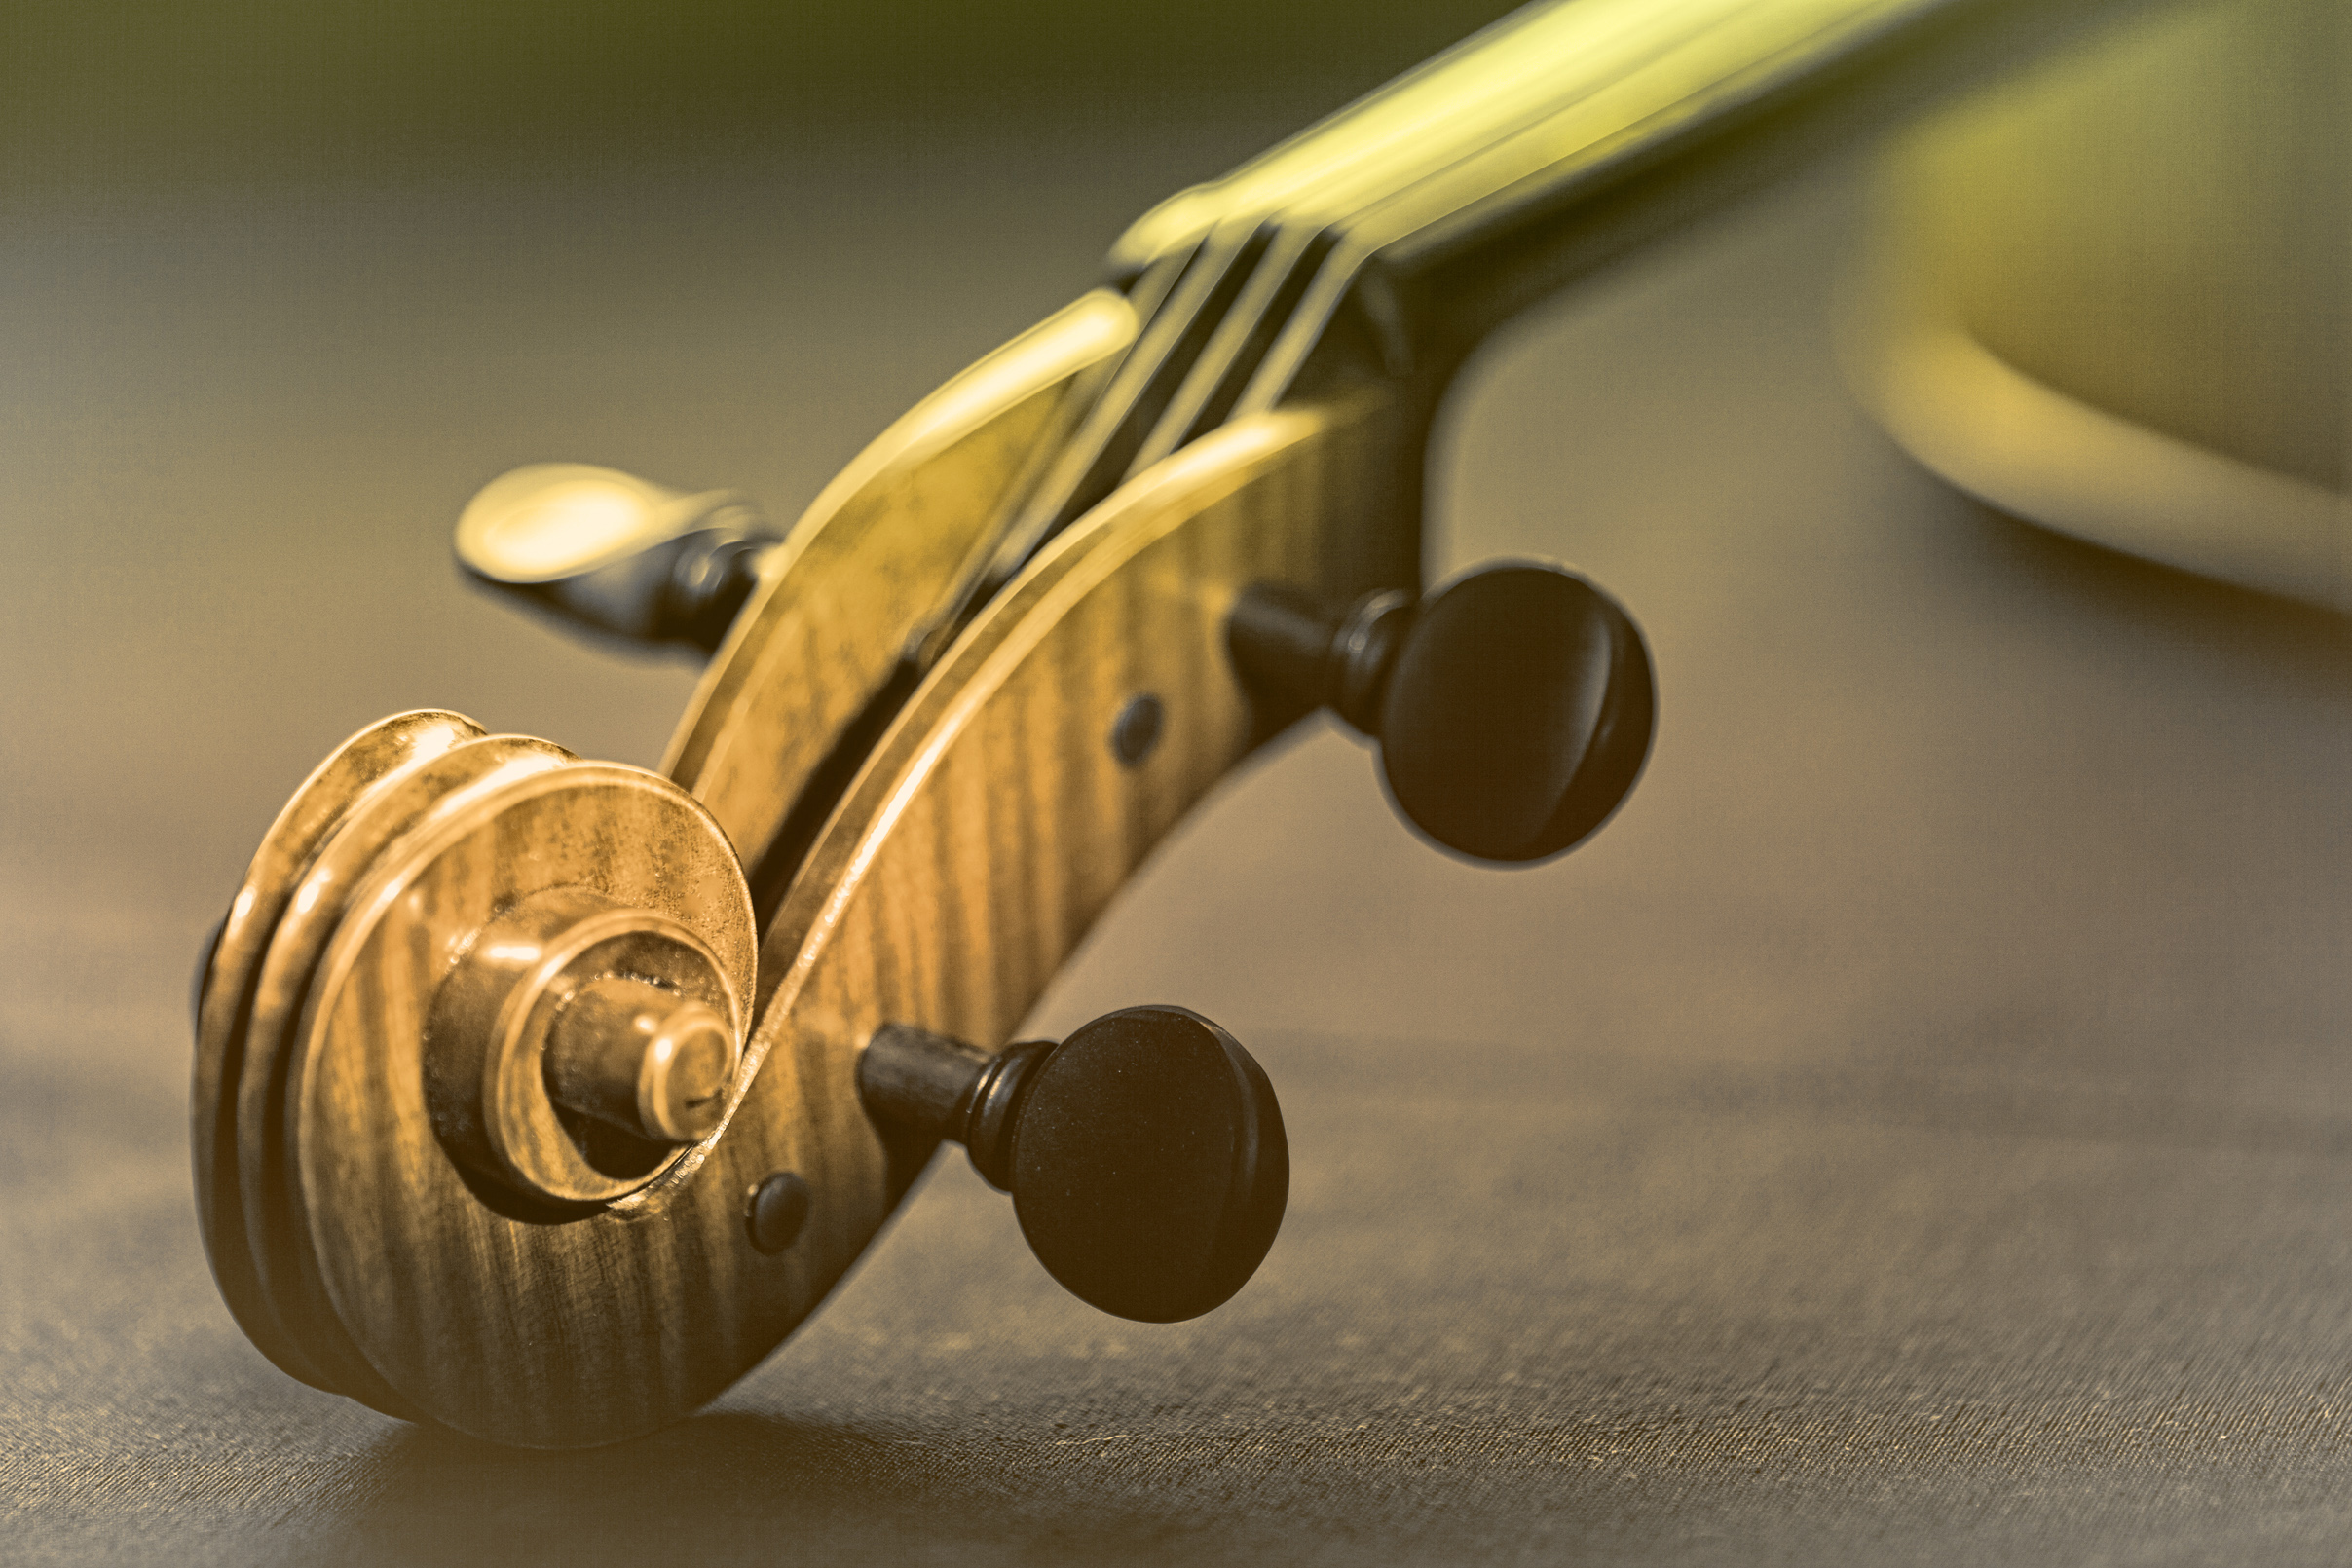 Violin - scroll and pegbox close-up - retro looks photo